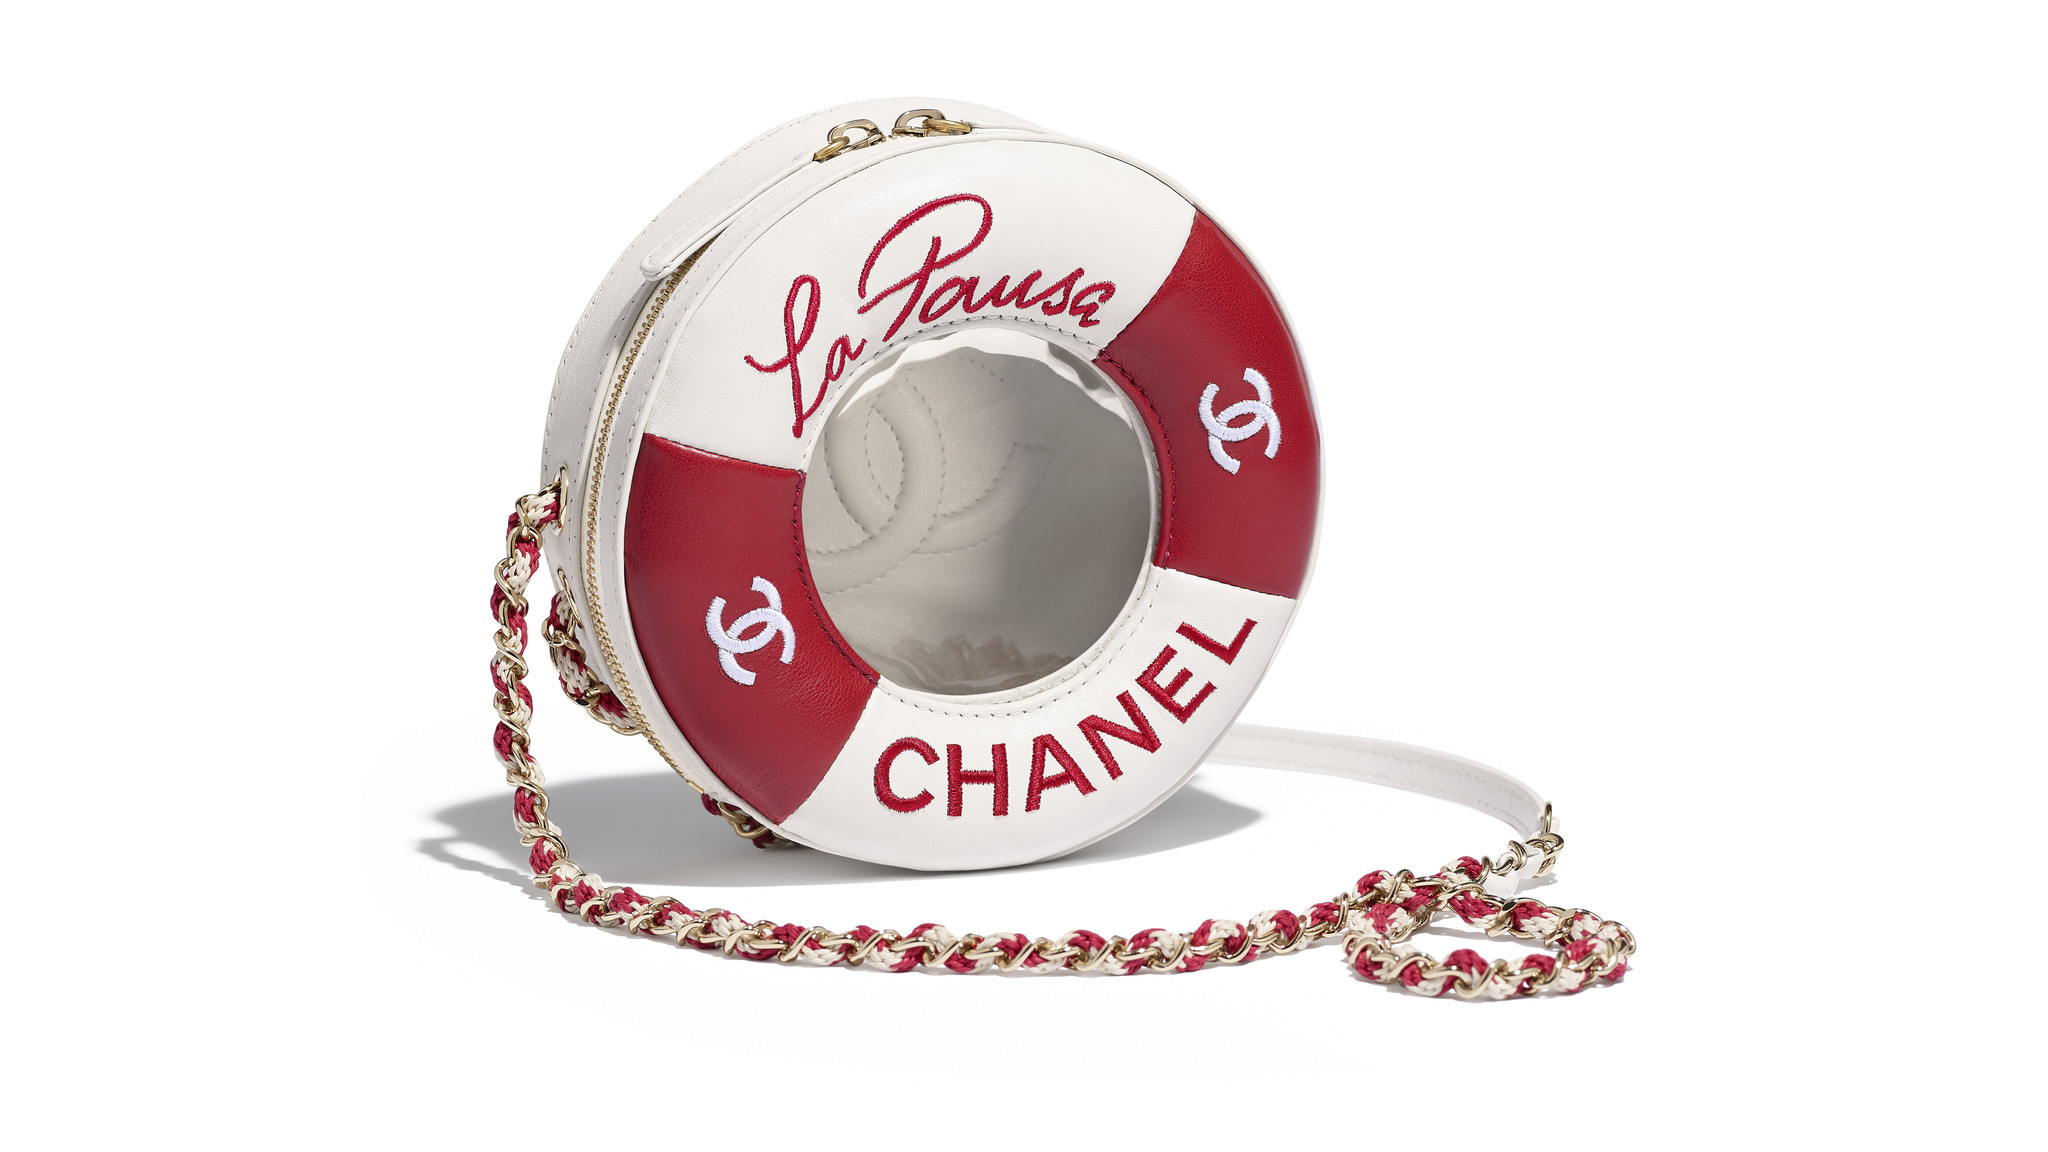 Chanel lambskin life preserver-inspired handbag with gold-tone chainlink strap, $4500 at Chanel in B